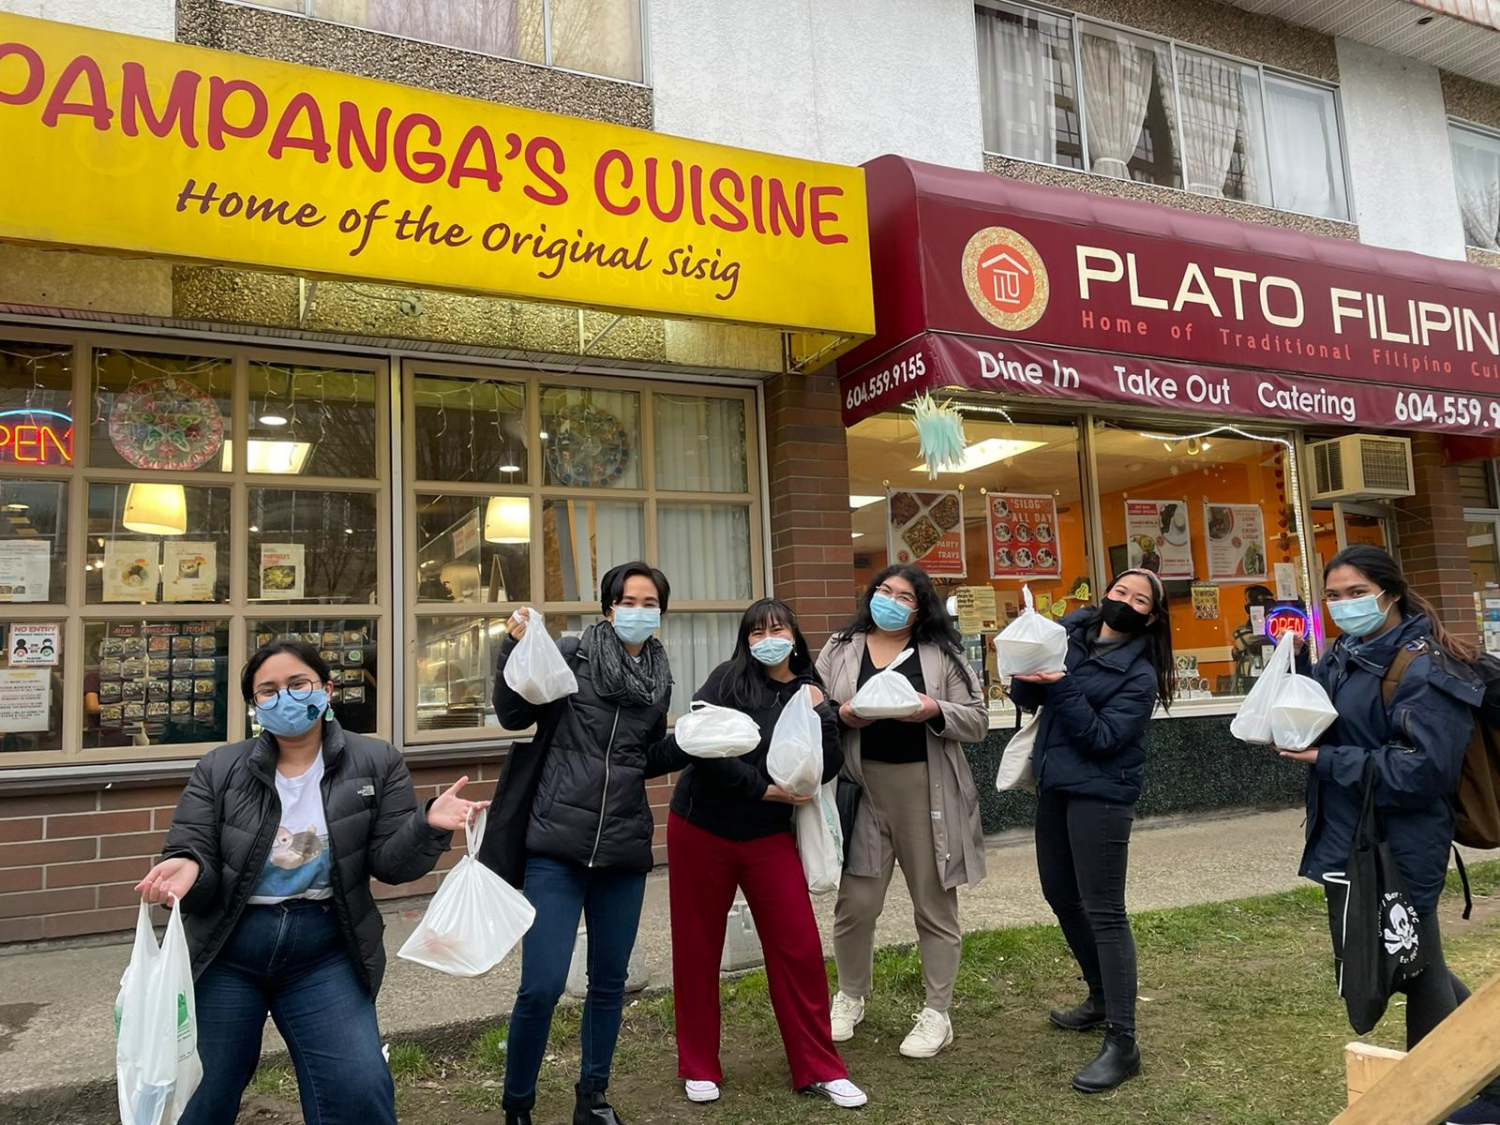 Six young racialized people pose optimistically with bags of takeout in front of Pampanga's Cuisine.